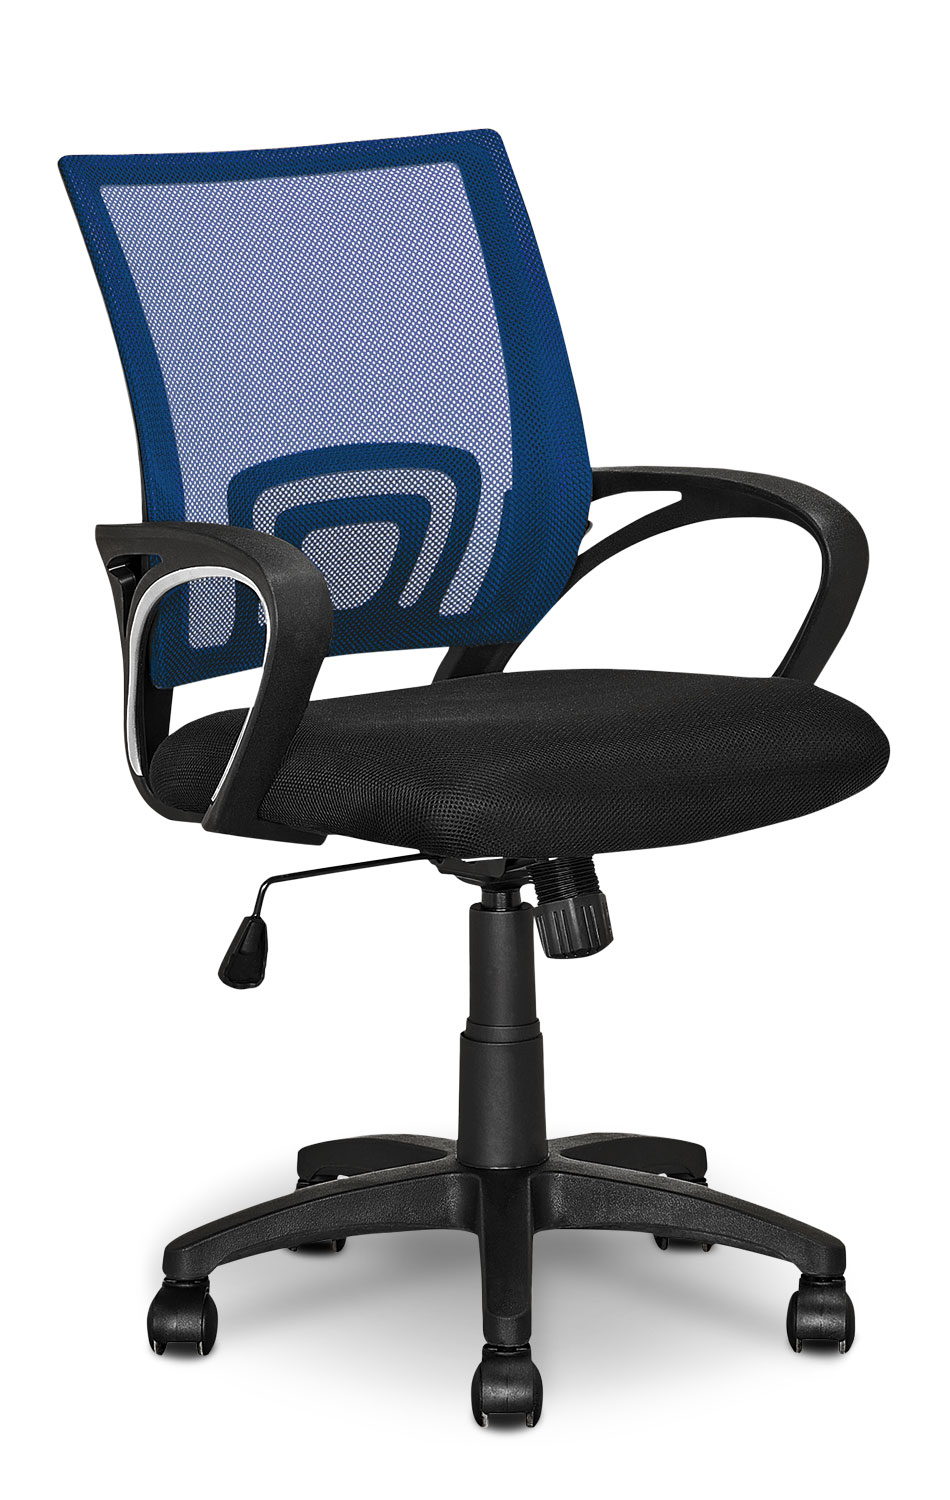 Loft Mesh Office Chair – Dark Blue